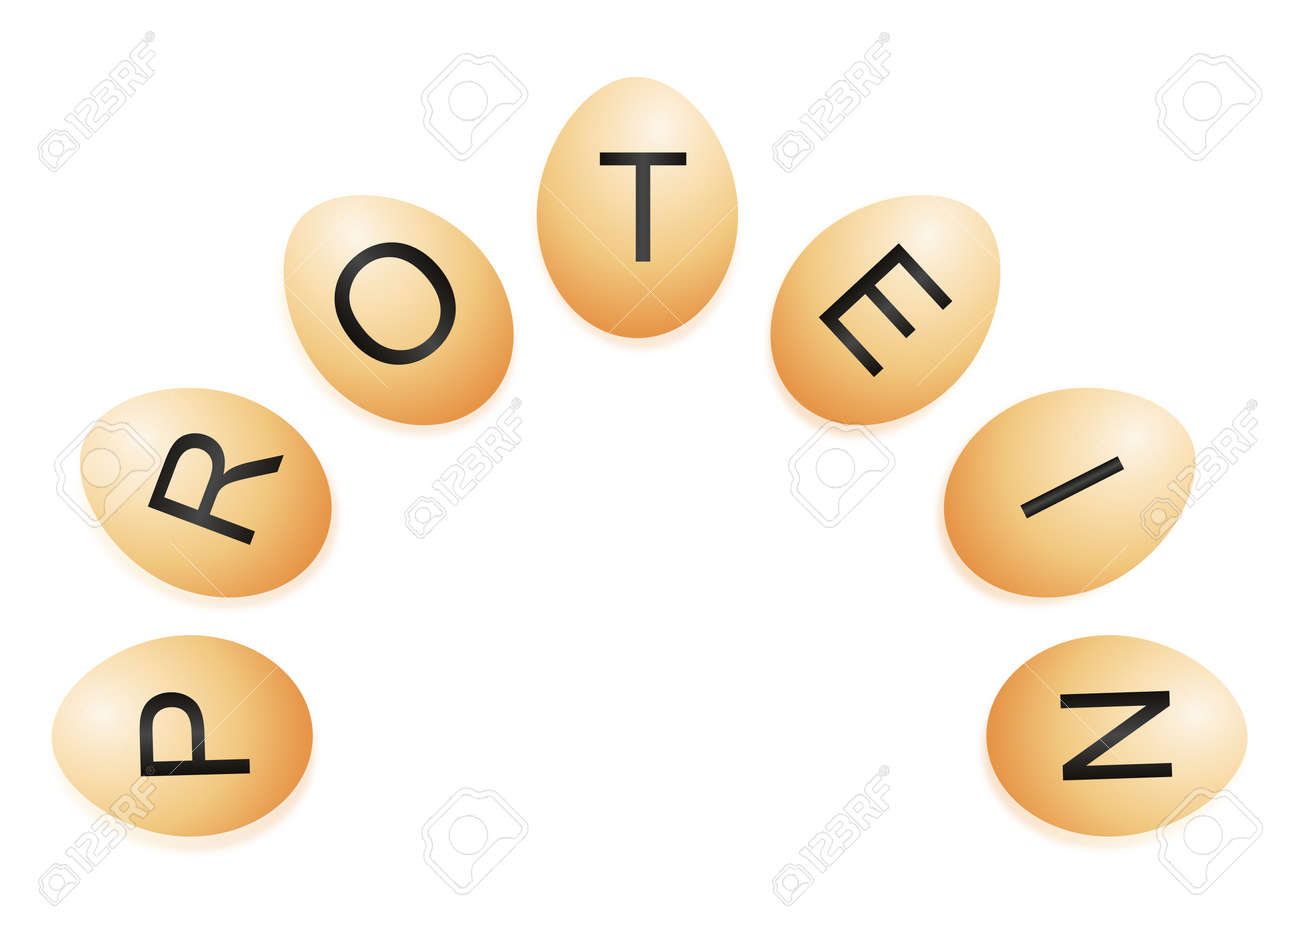 illustration illustration depicting a semi circle of chicken eggs with letters spelling the word protein arranged over white and reflecting into the